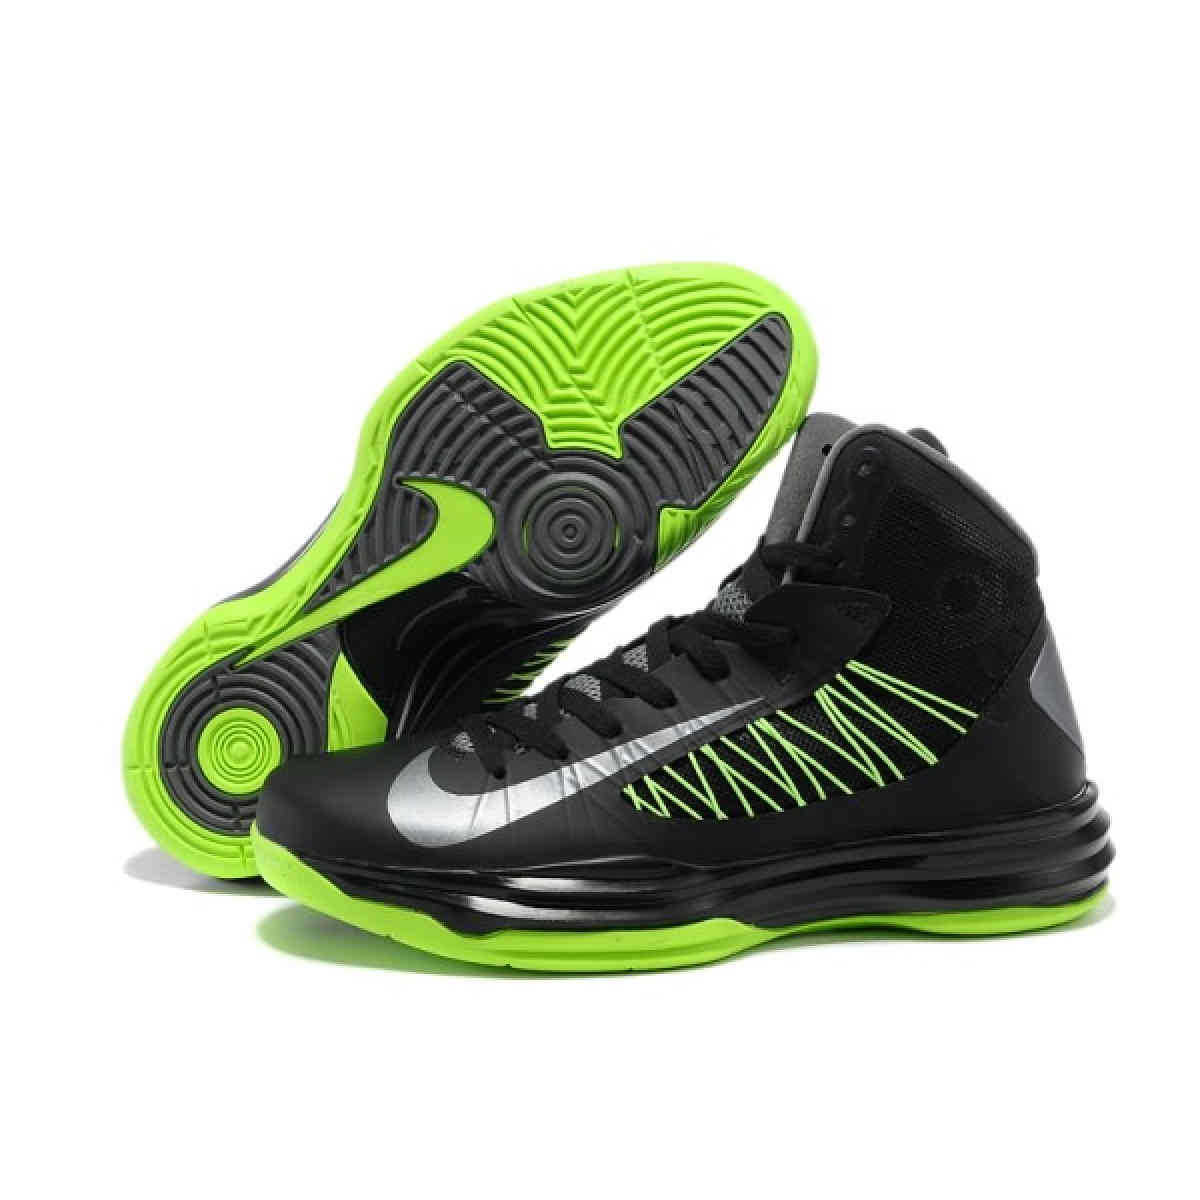 Nike Lunar Hyperdunk X 2012 LeBron James BlackGreyGreen